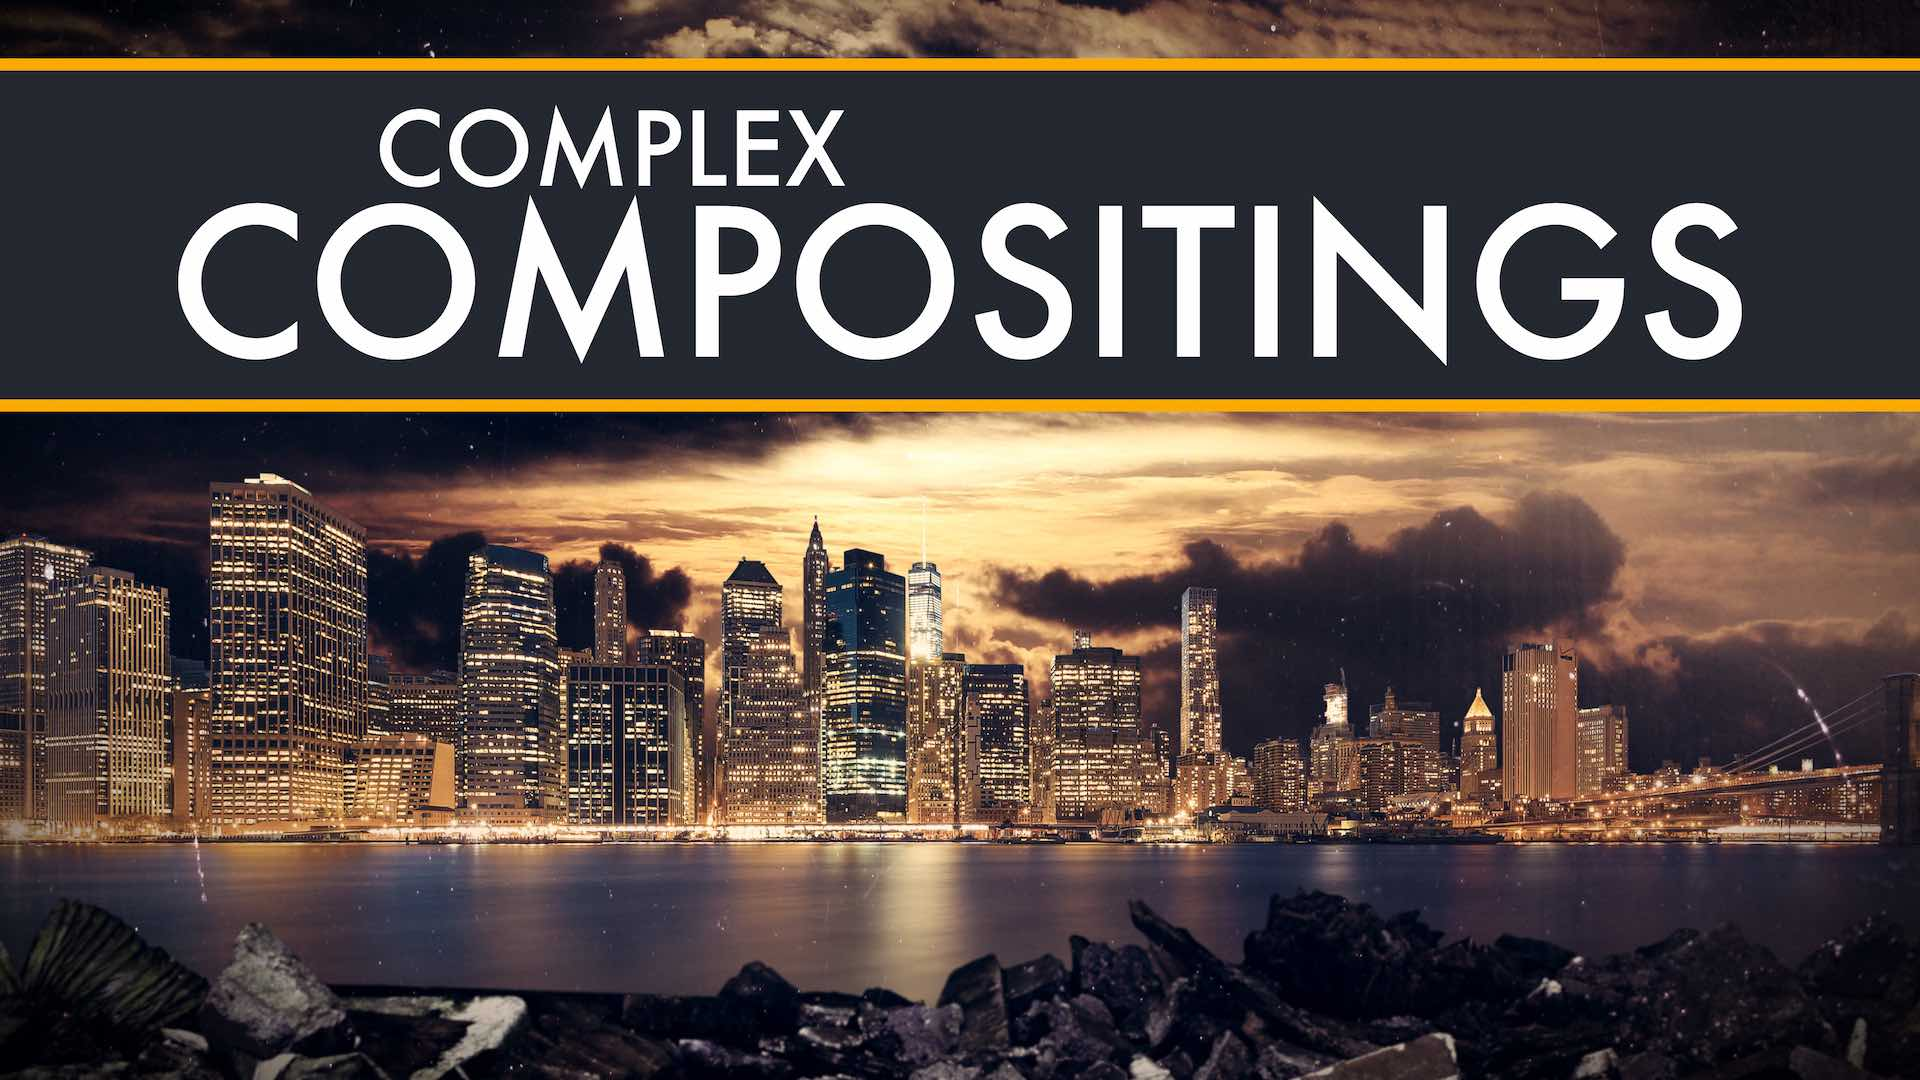 complex compositing